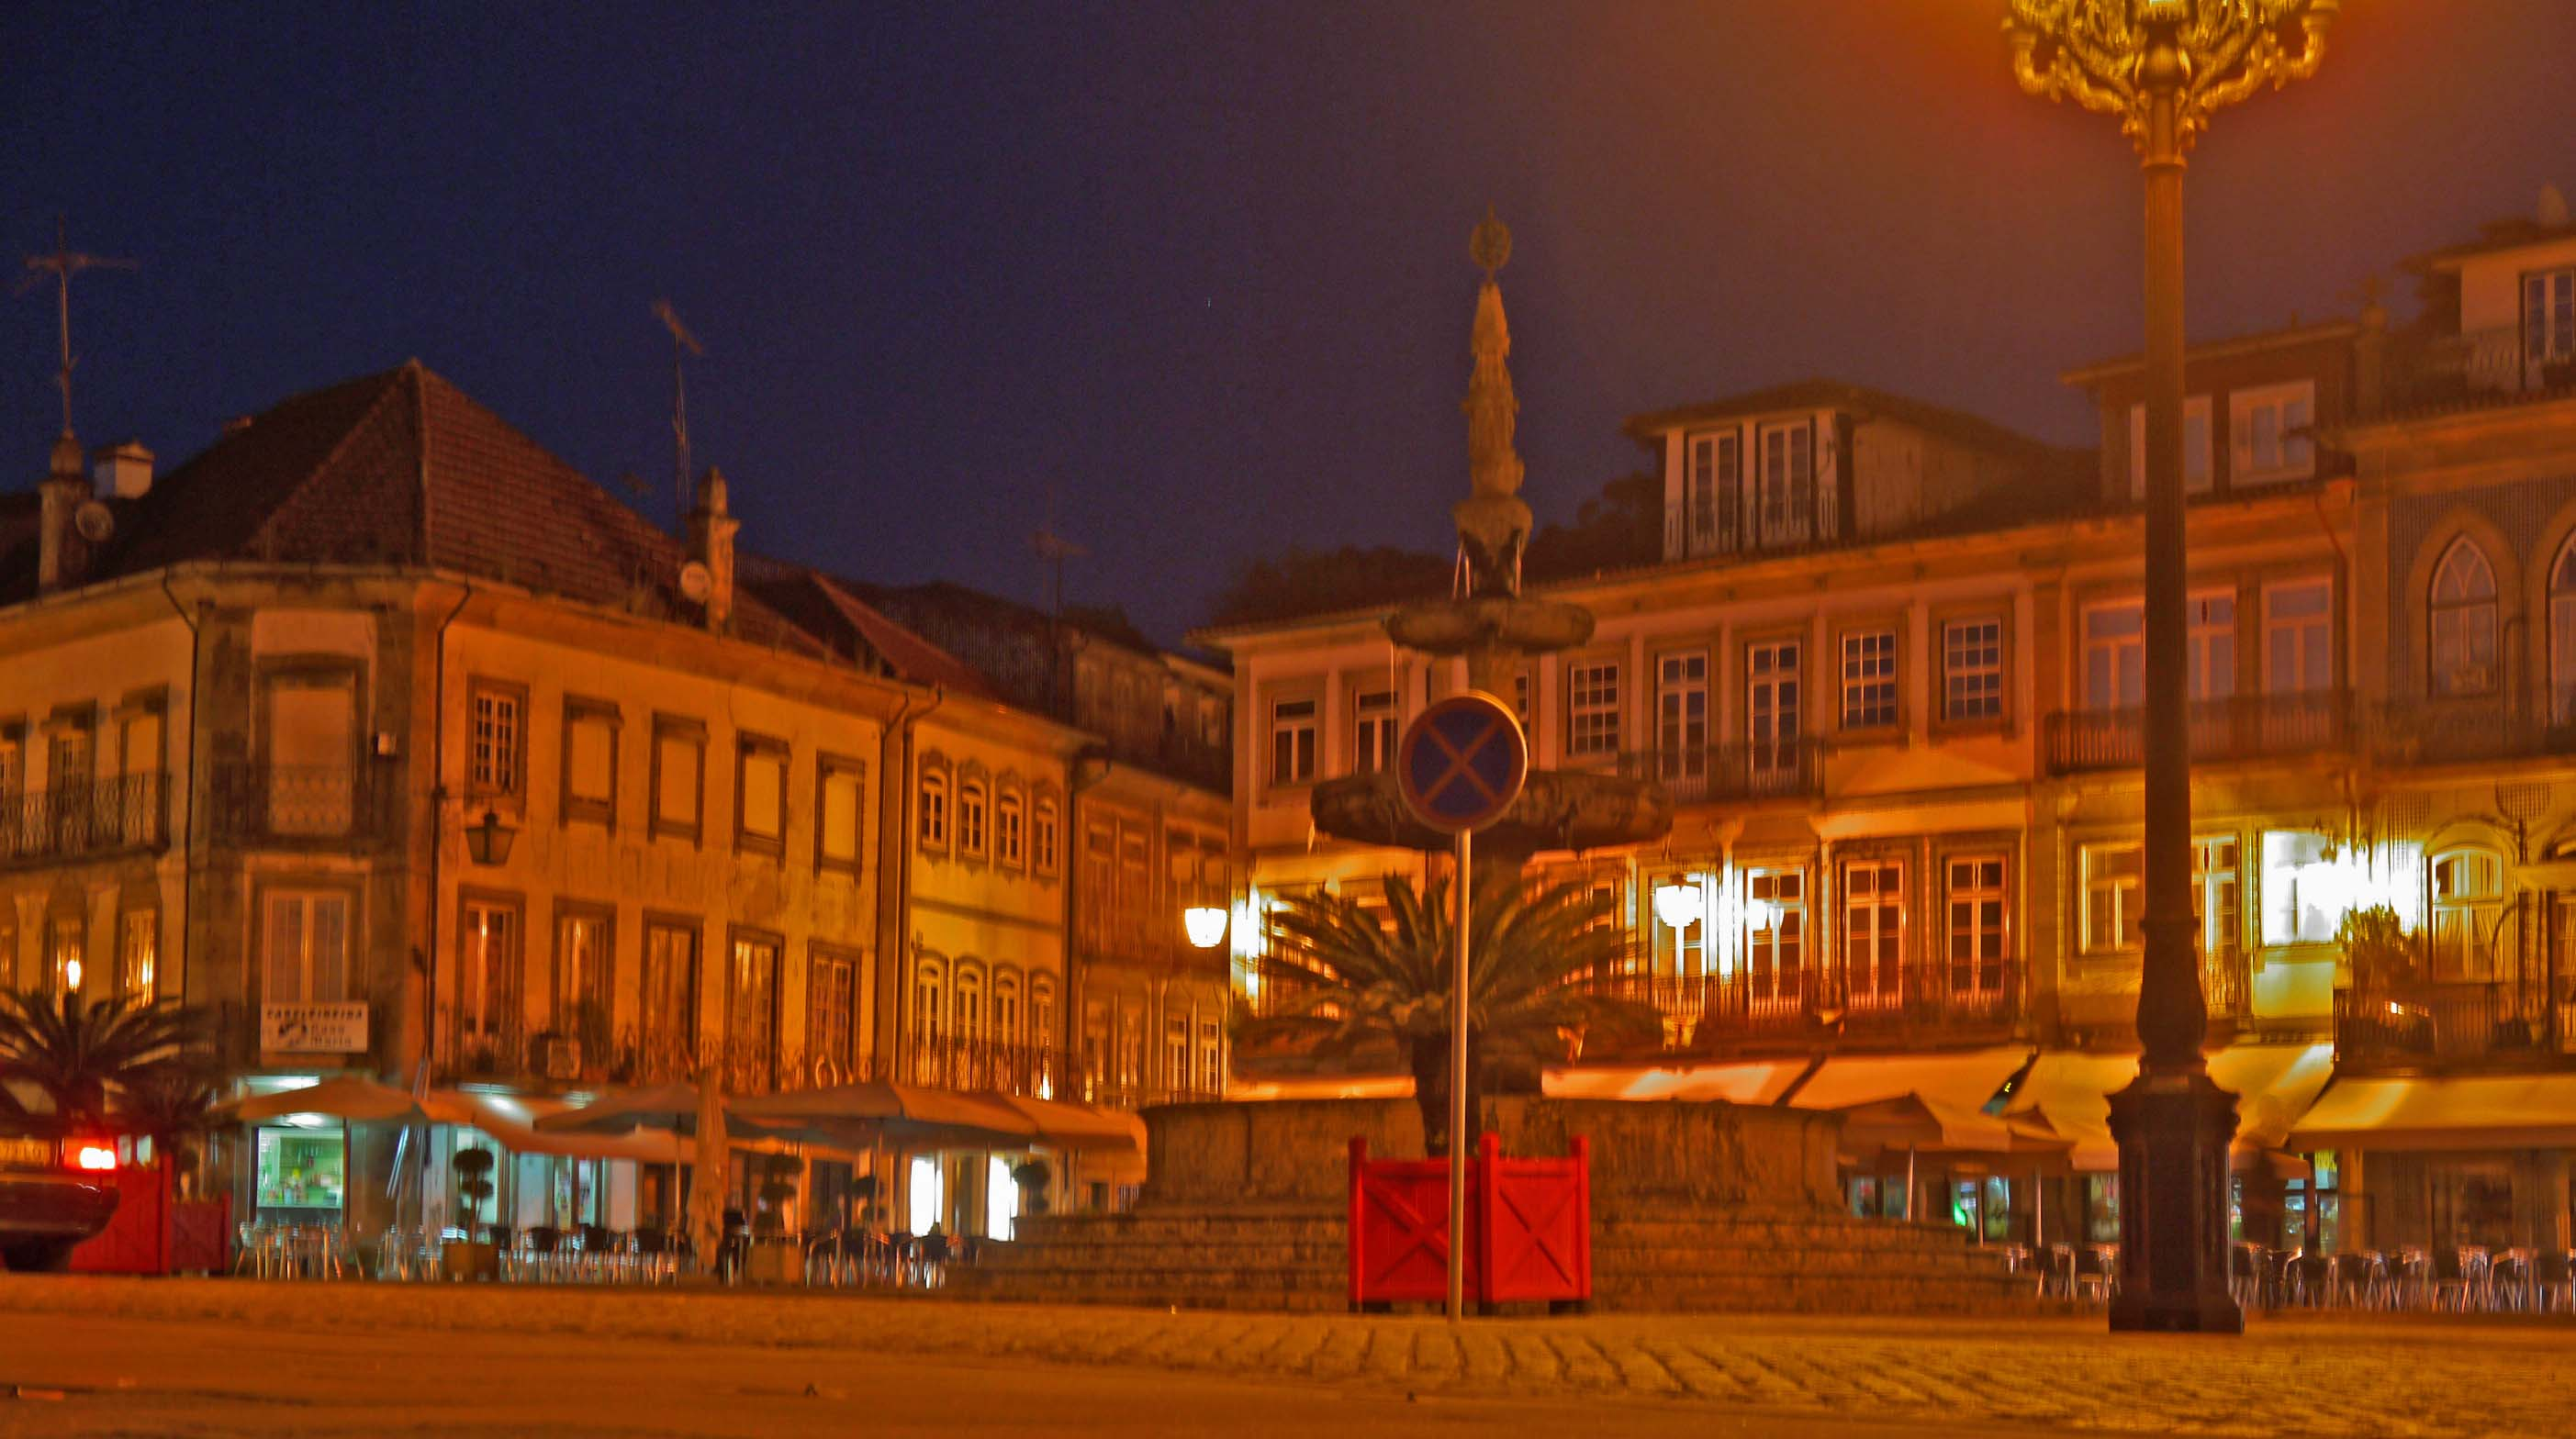 Camoes Square at night